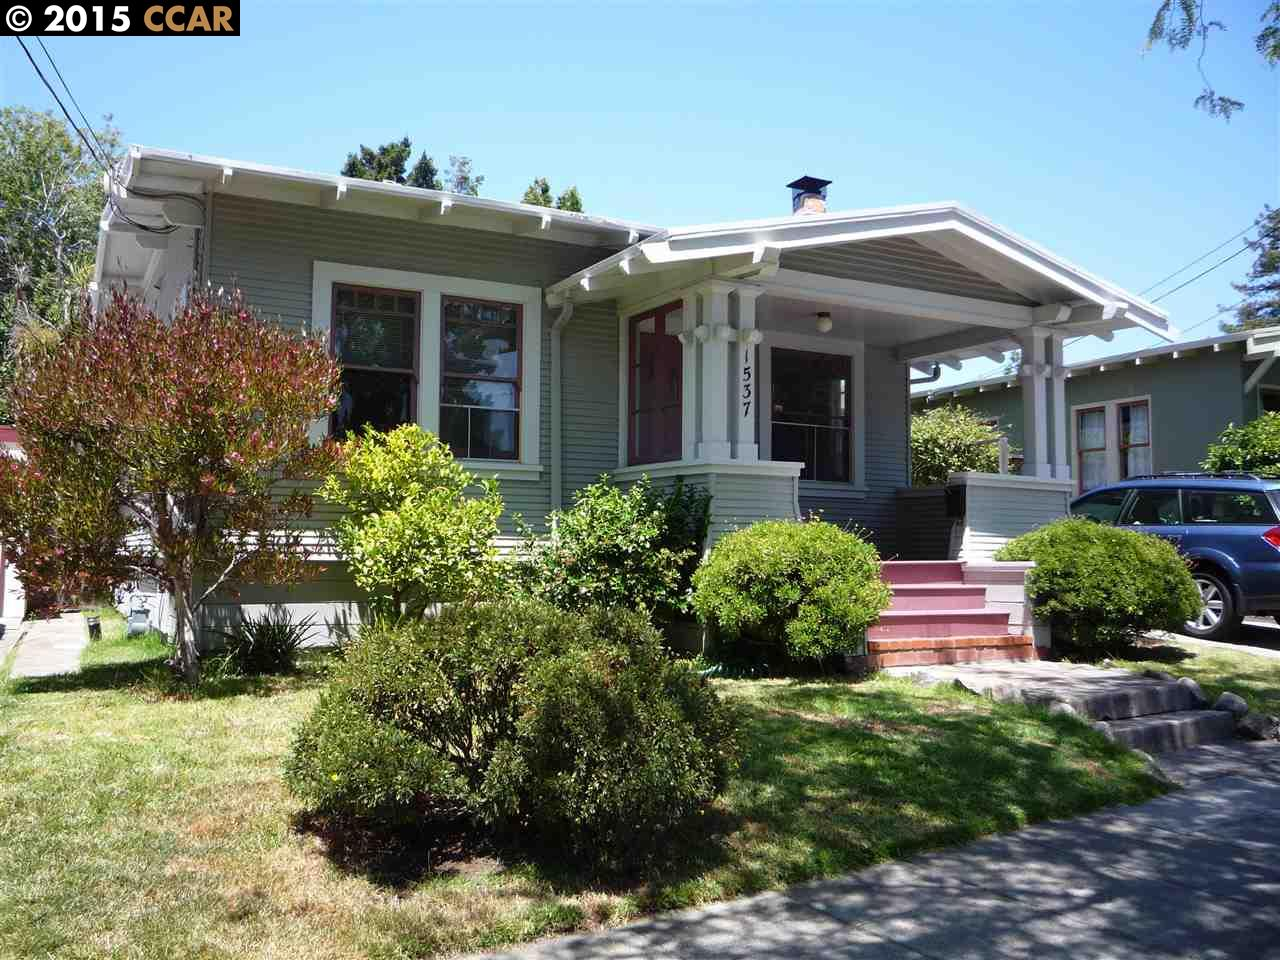 Additional photo for property listing at 1537 CEDAR Street  Berkeley, Kalifornien 94703 Vereinigte Staaten